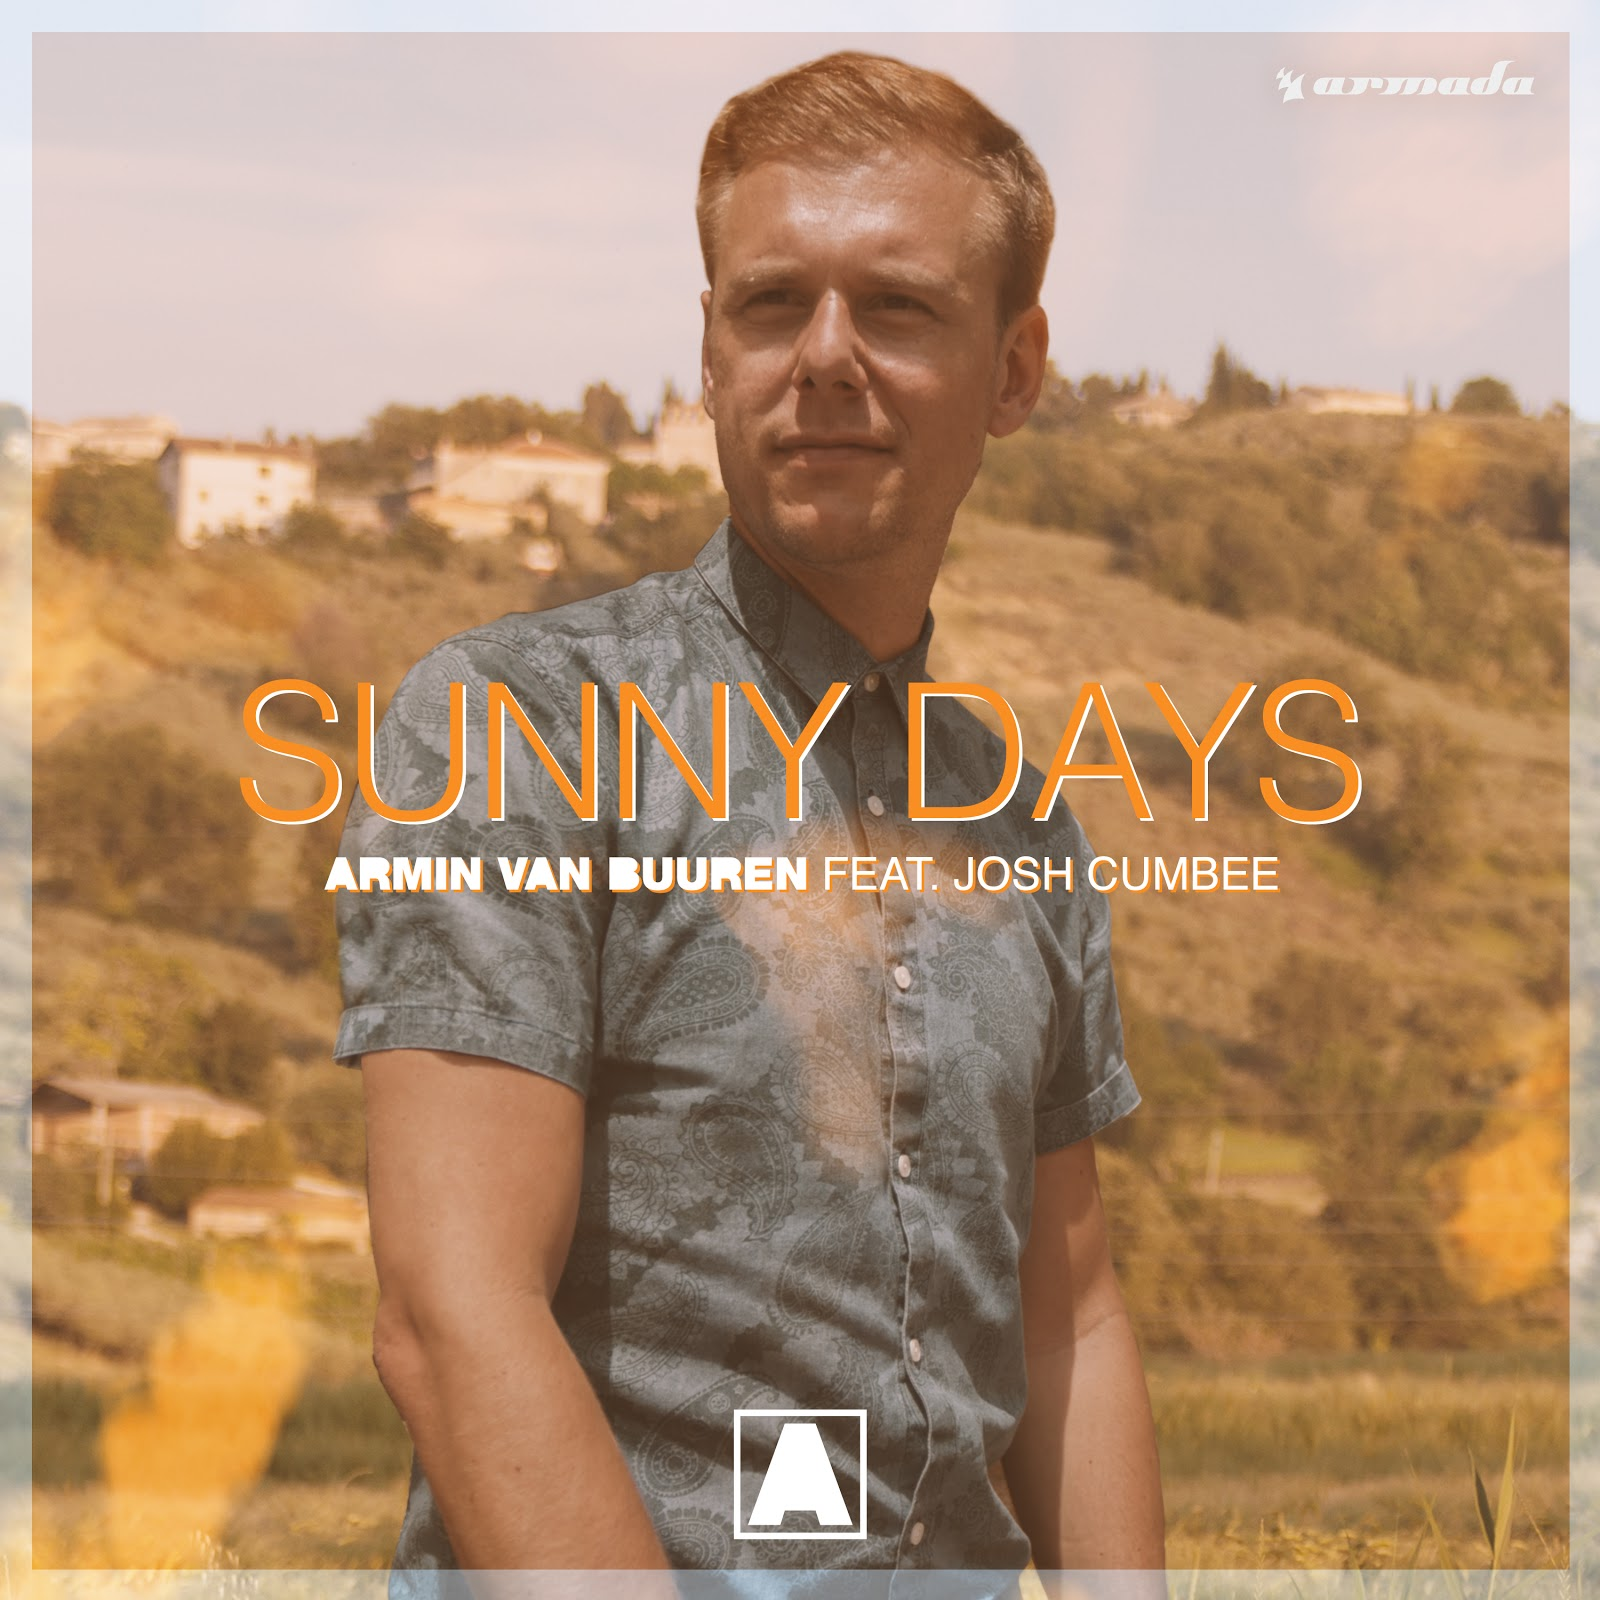 ARMIN VAN BUUREN LAUNCHES SUMMER ANTHEM 'SUNNY DAYS' (FEAT. JOSH CUMBEE)AND MUSIC VIDEO -